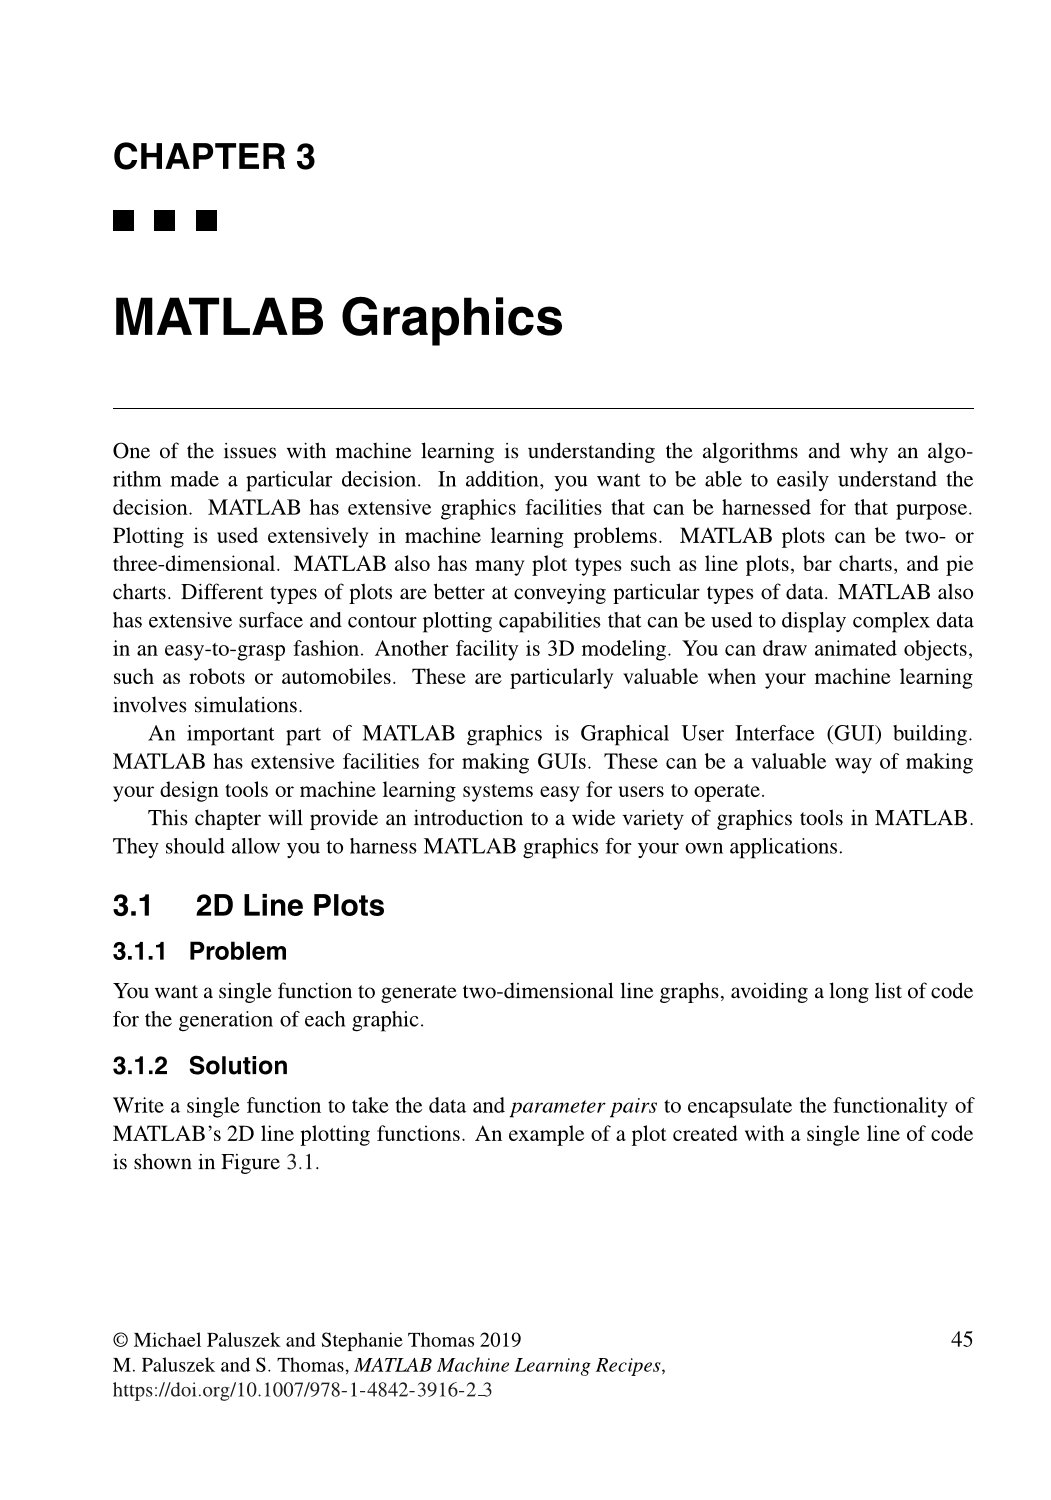 MATLAB Machine Learning Recipes: A Problem-Solution Approach, 2/e (Paperback)-preview-1